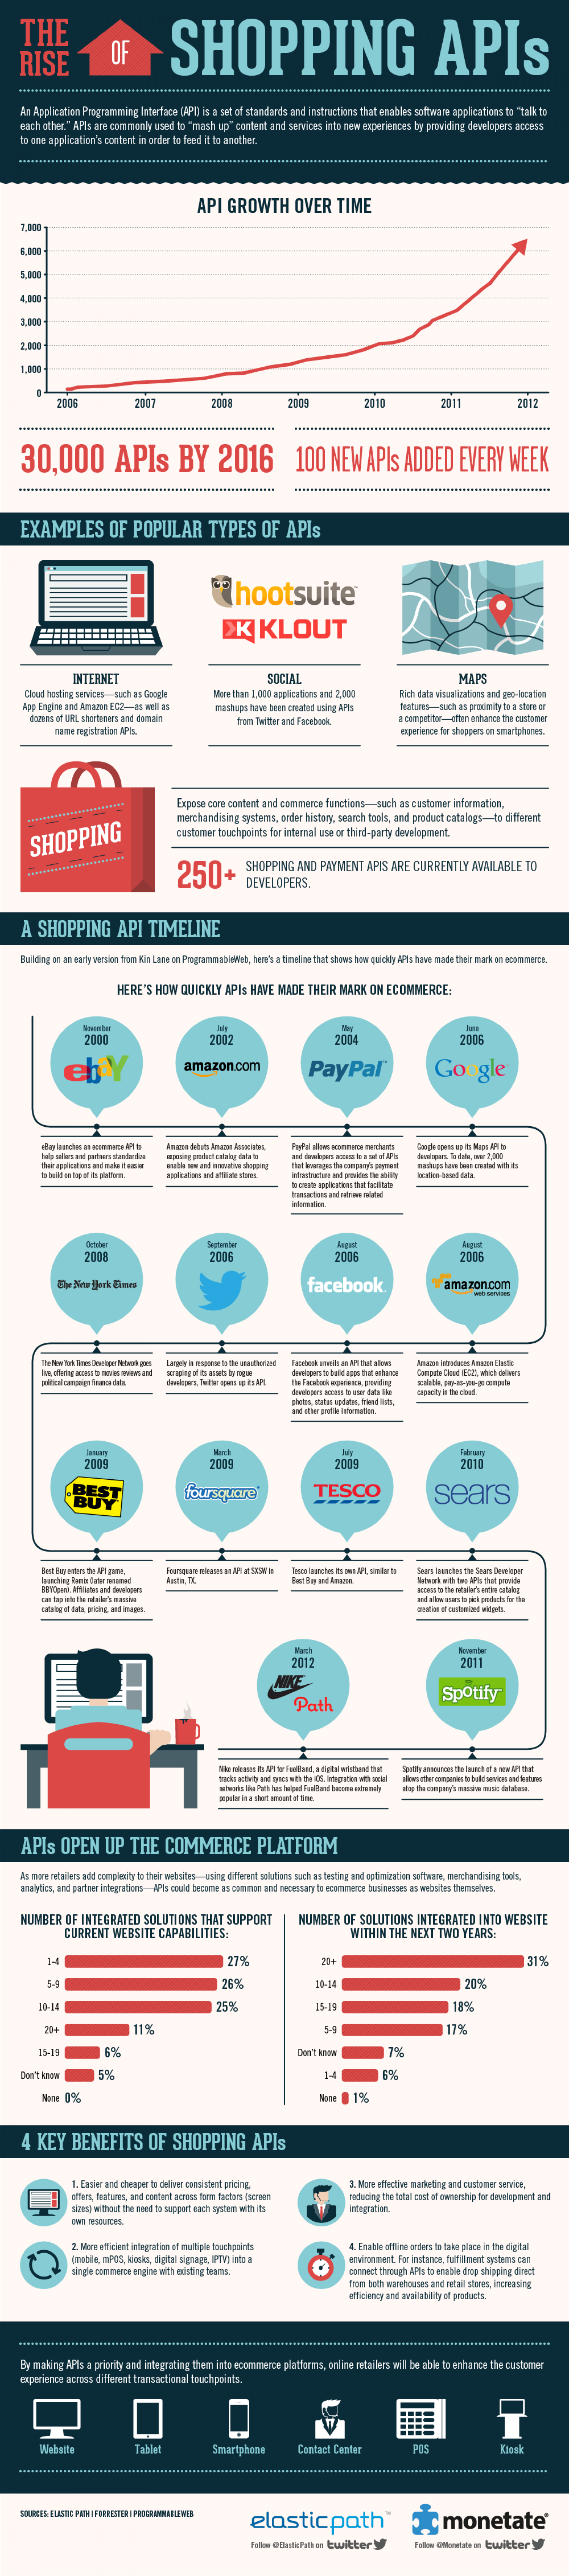 The Rise Of Shopping APIs Infographic